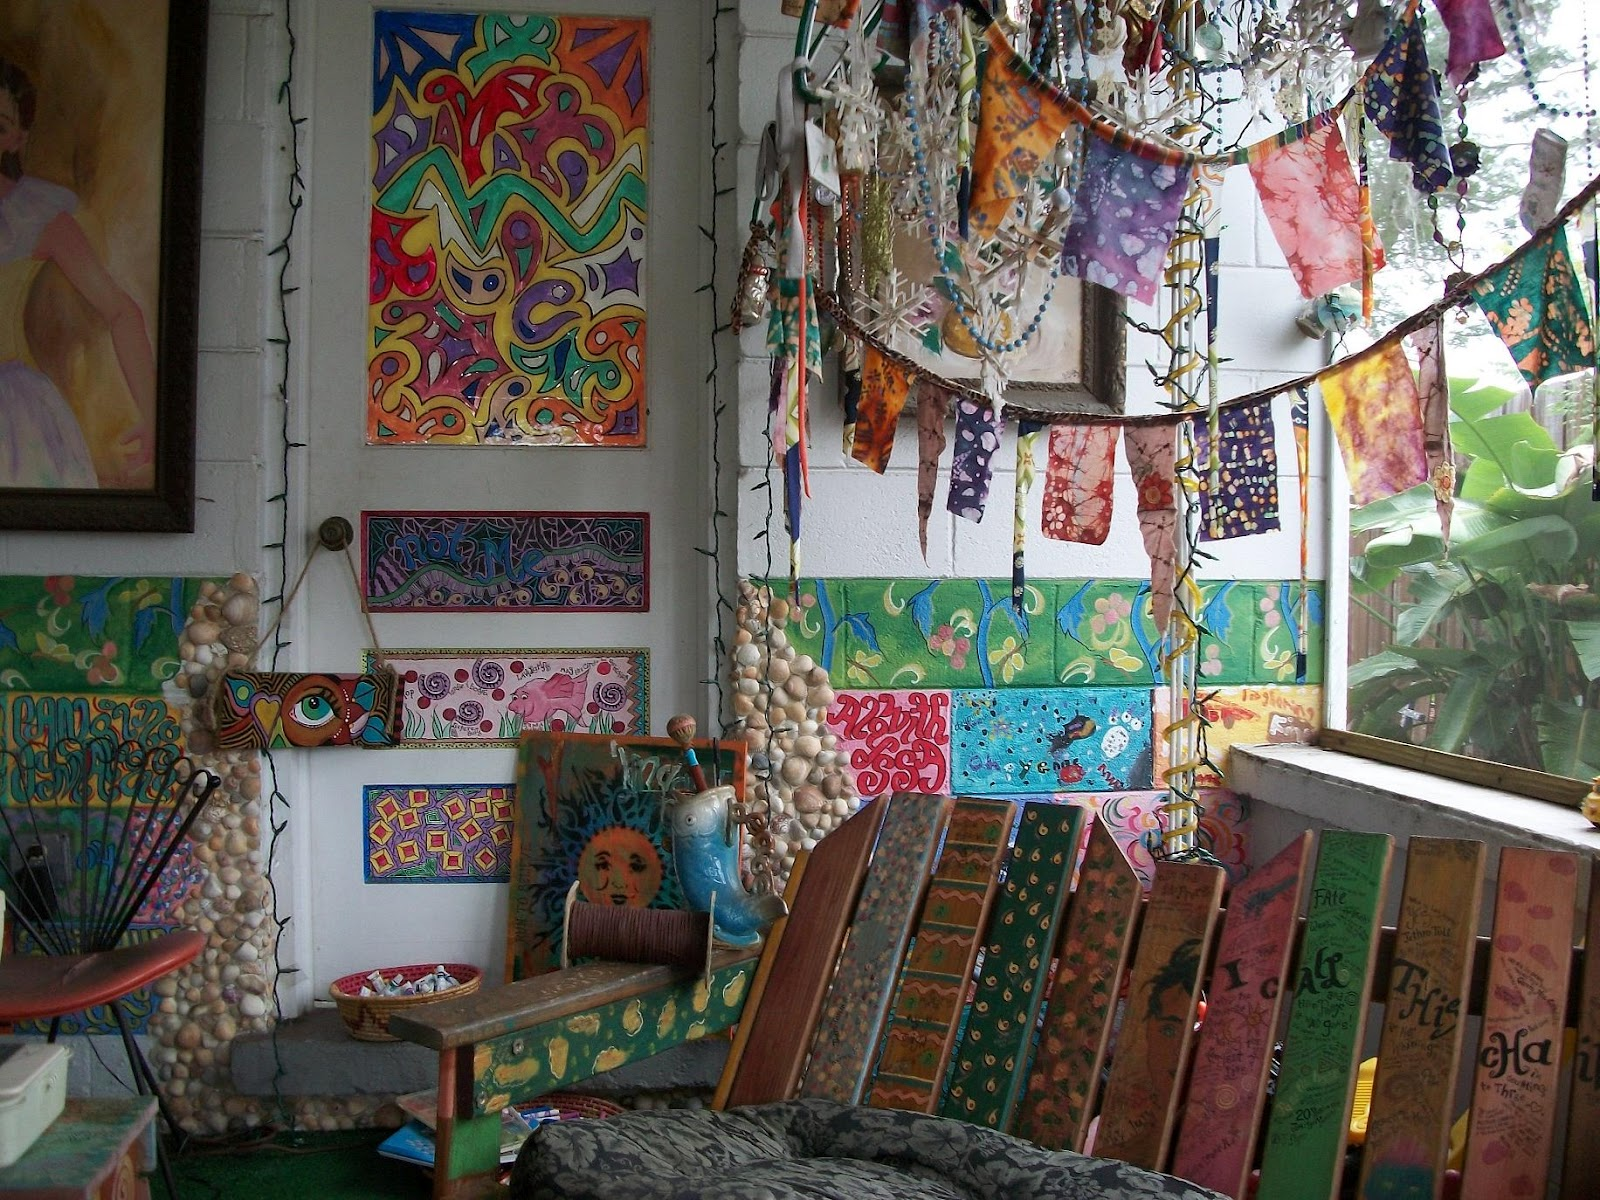 Http://thehippieparade.blogspot.com/ love the wood hippie art ...